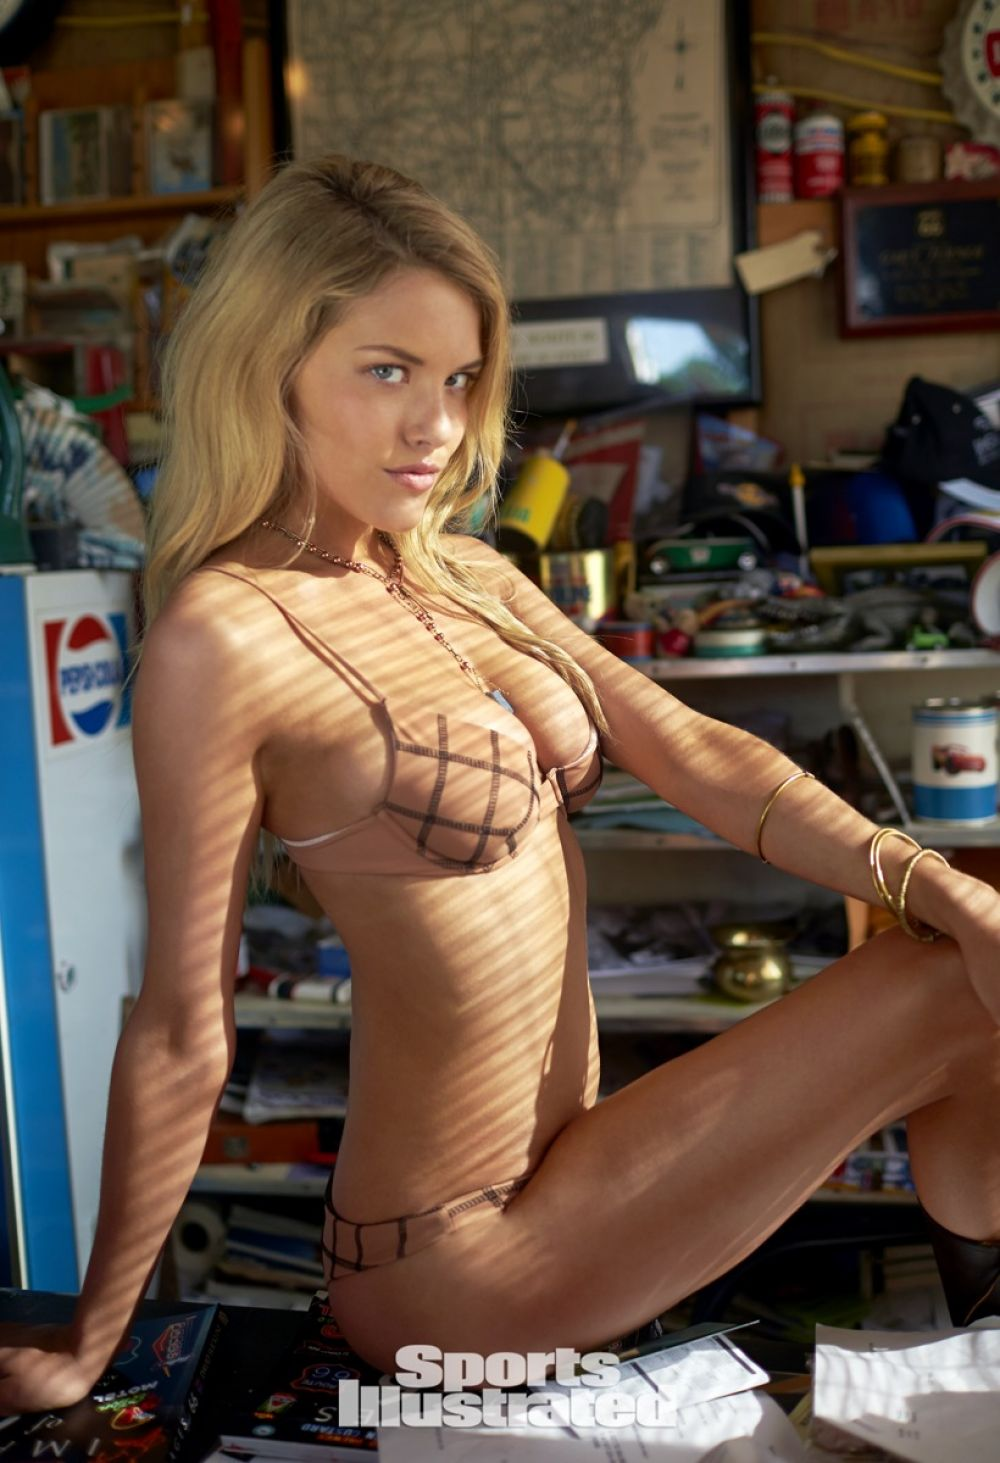 ASHLEY SMITH in Sports Illustrated Swimsuit 2015 Issue